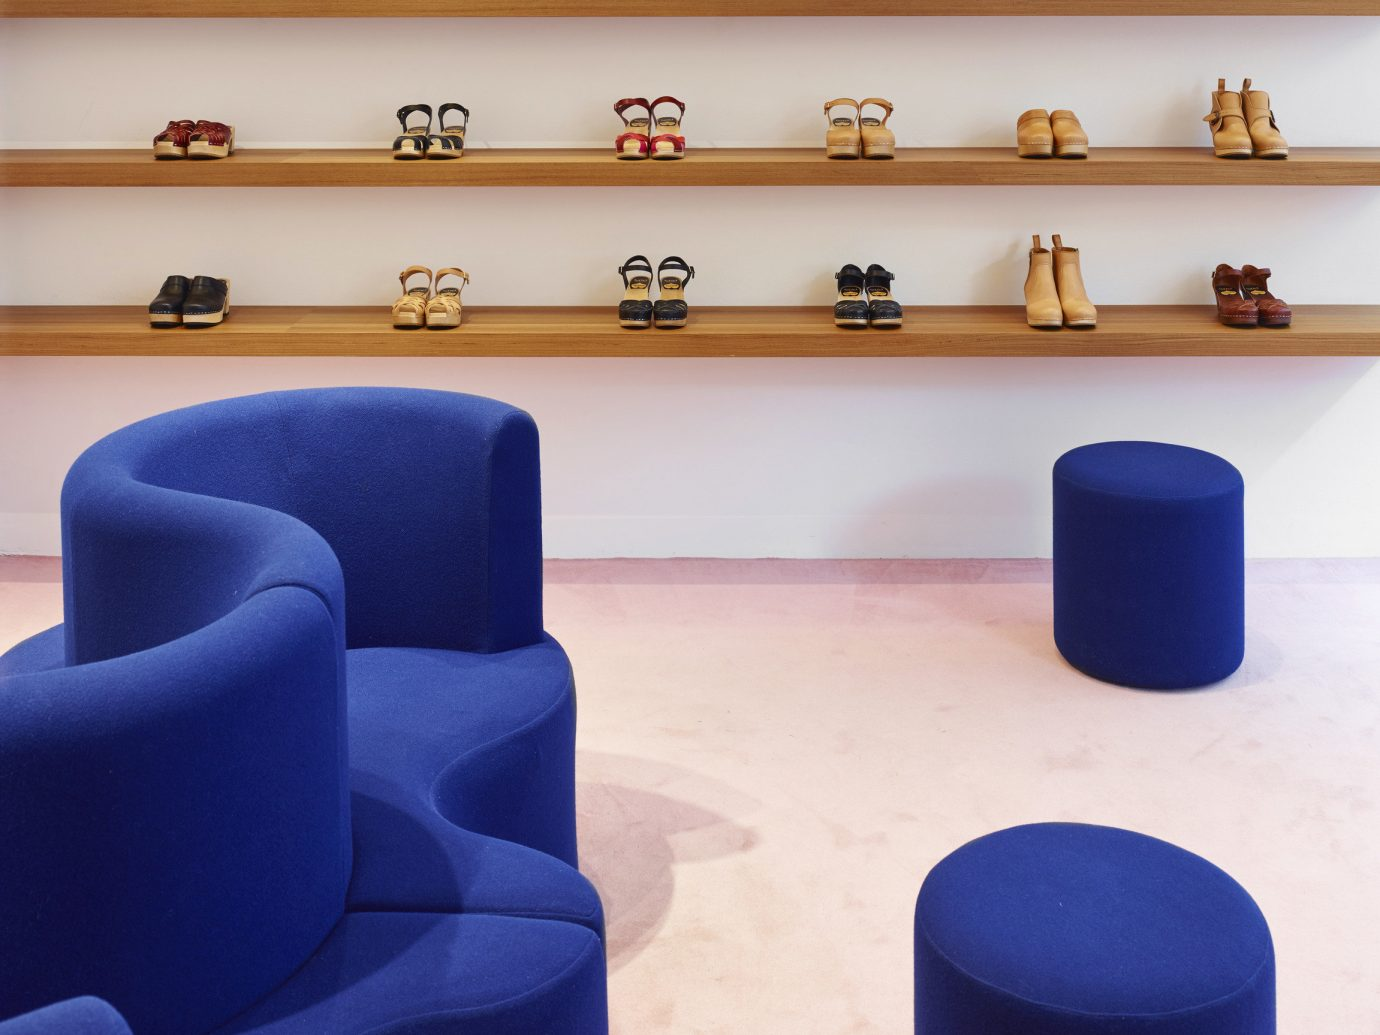 Offbeat Trip Ideas blue furniture indoor table product interior design chair product design flooring floor angle couch waiting room